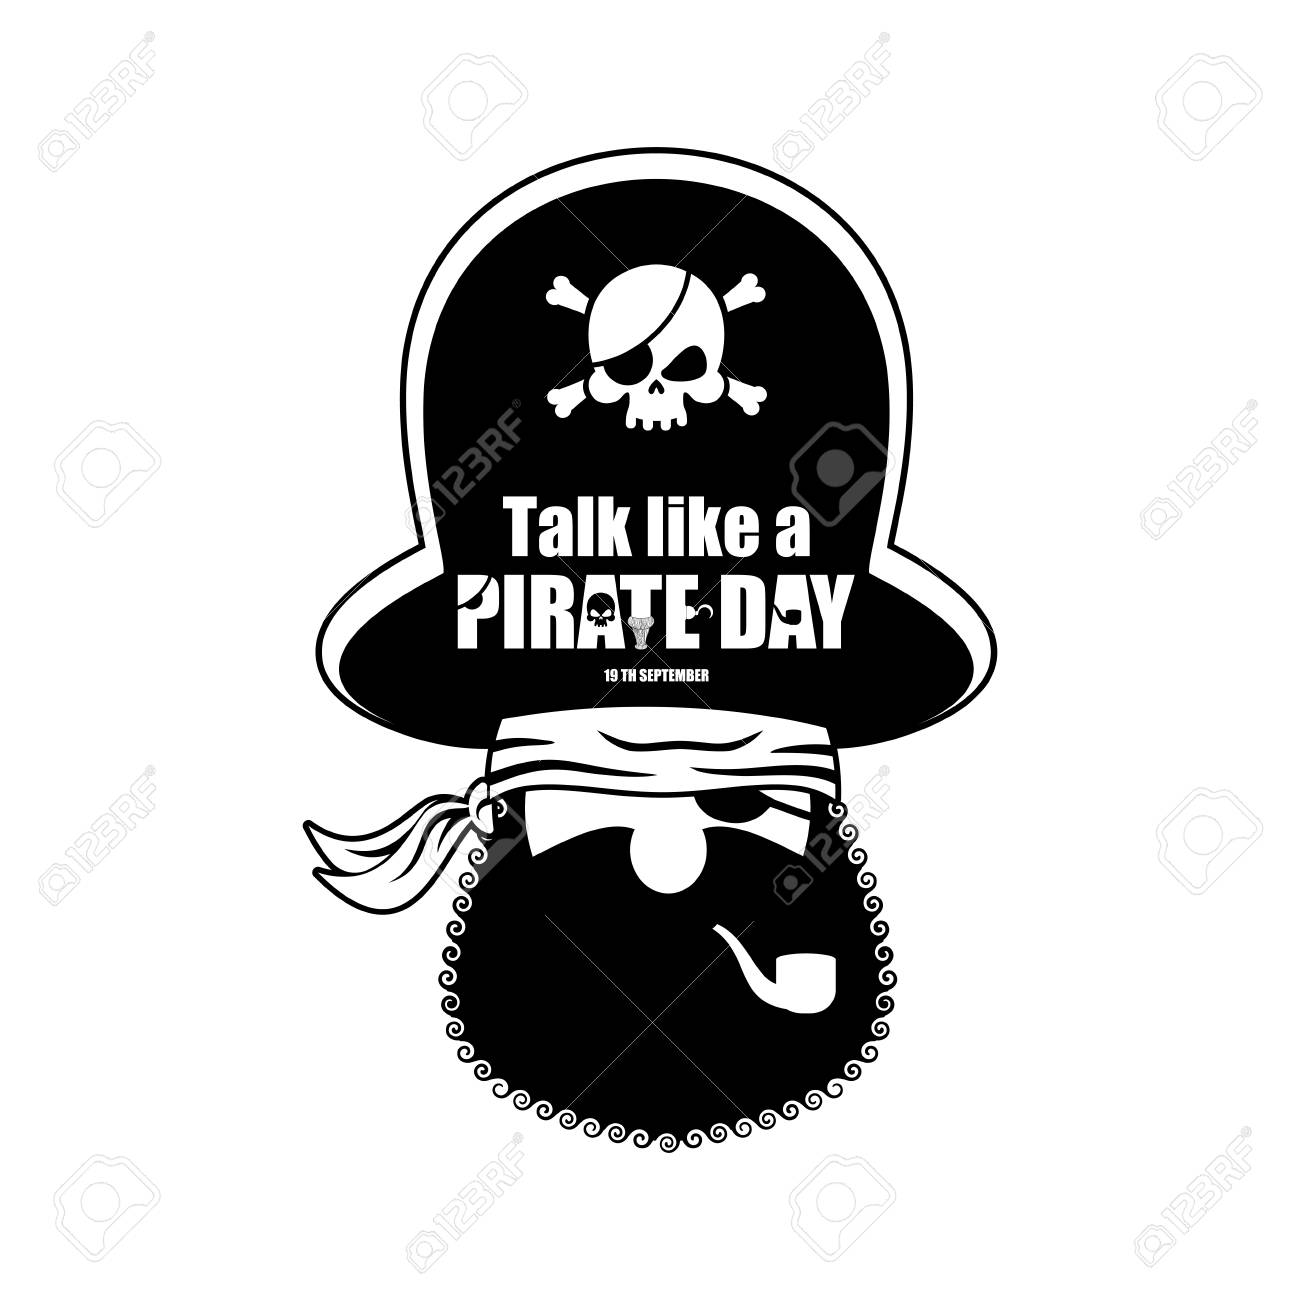 5fb0a1af85f International Talk Like A Pirate Day. Pirate portrait in hat. Eye patch and  smoking